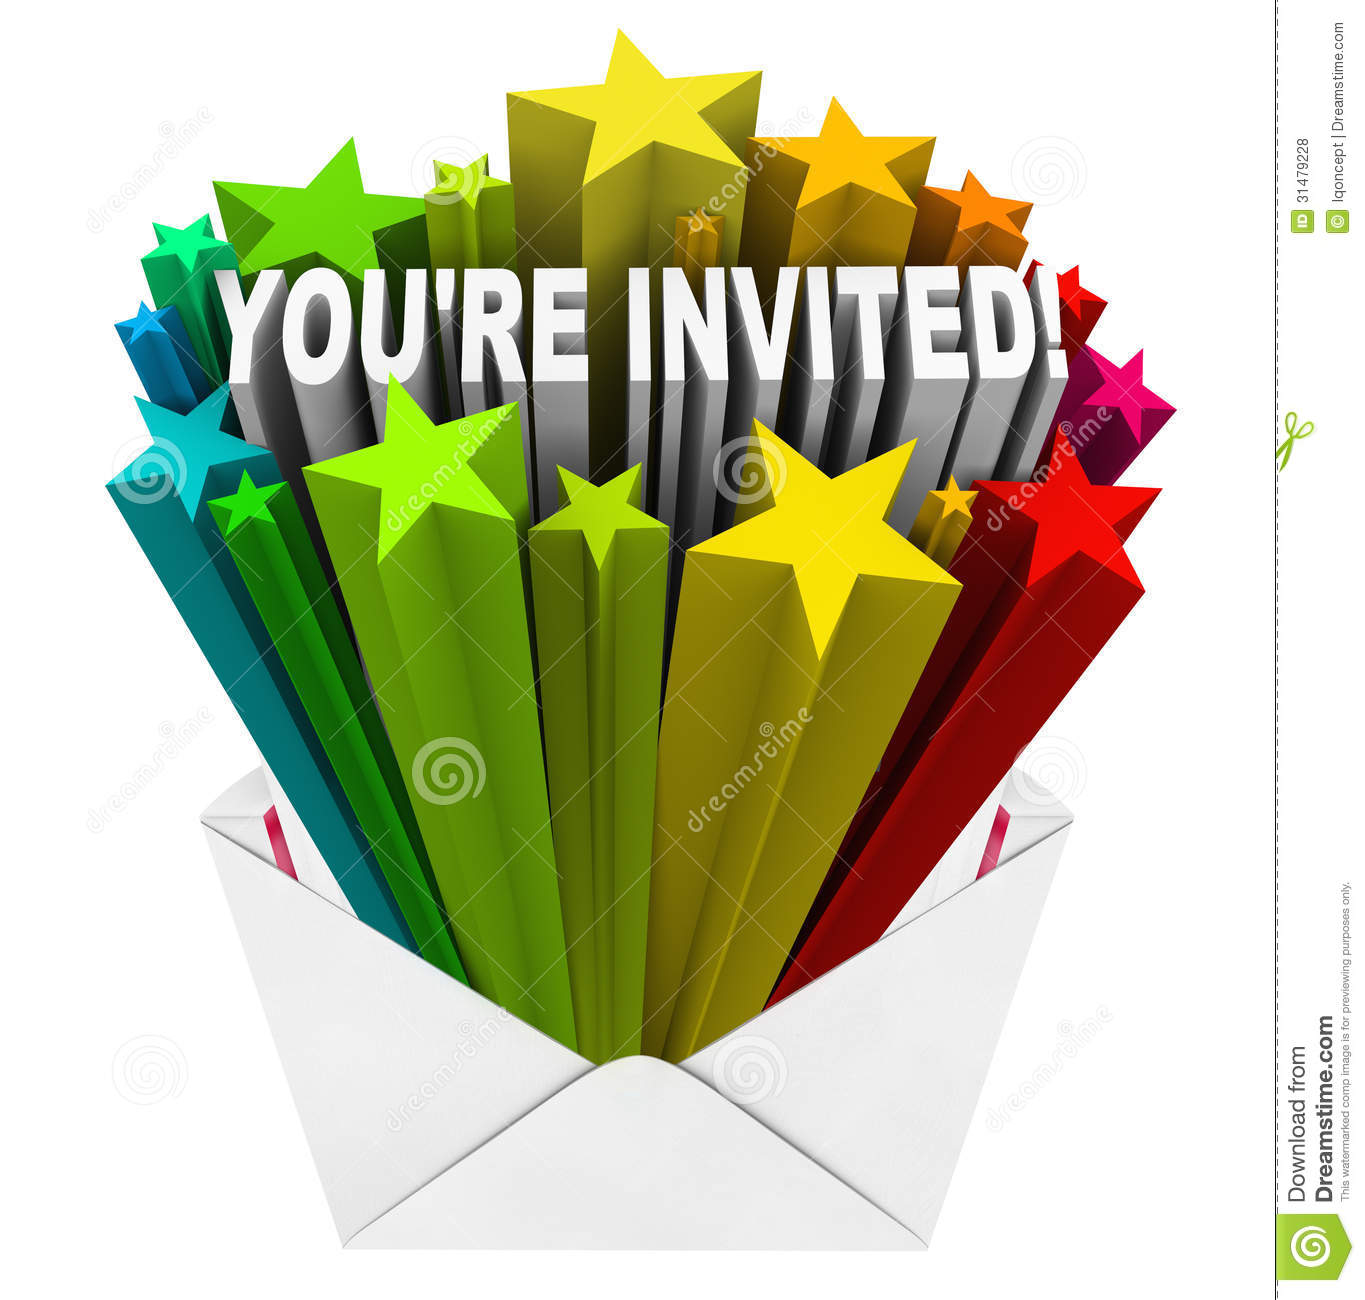 Free Event Invitations was perfect invitations layout